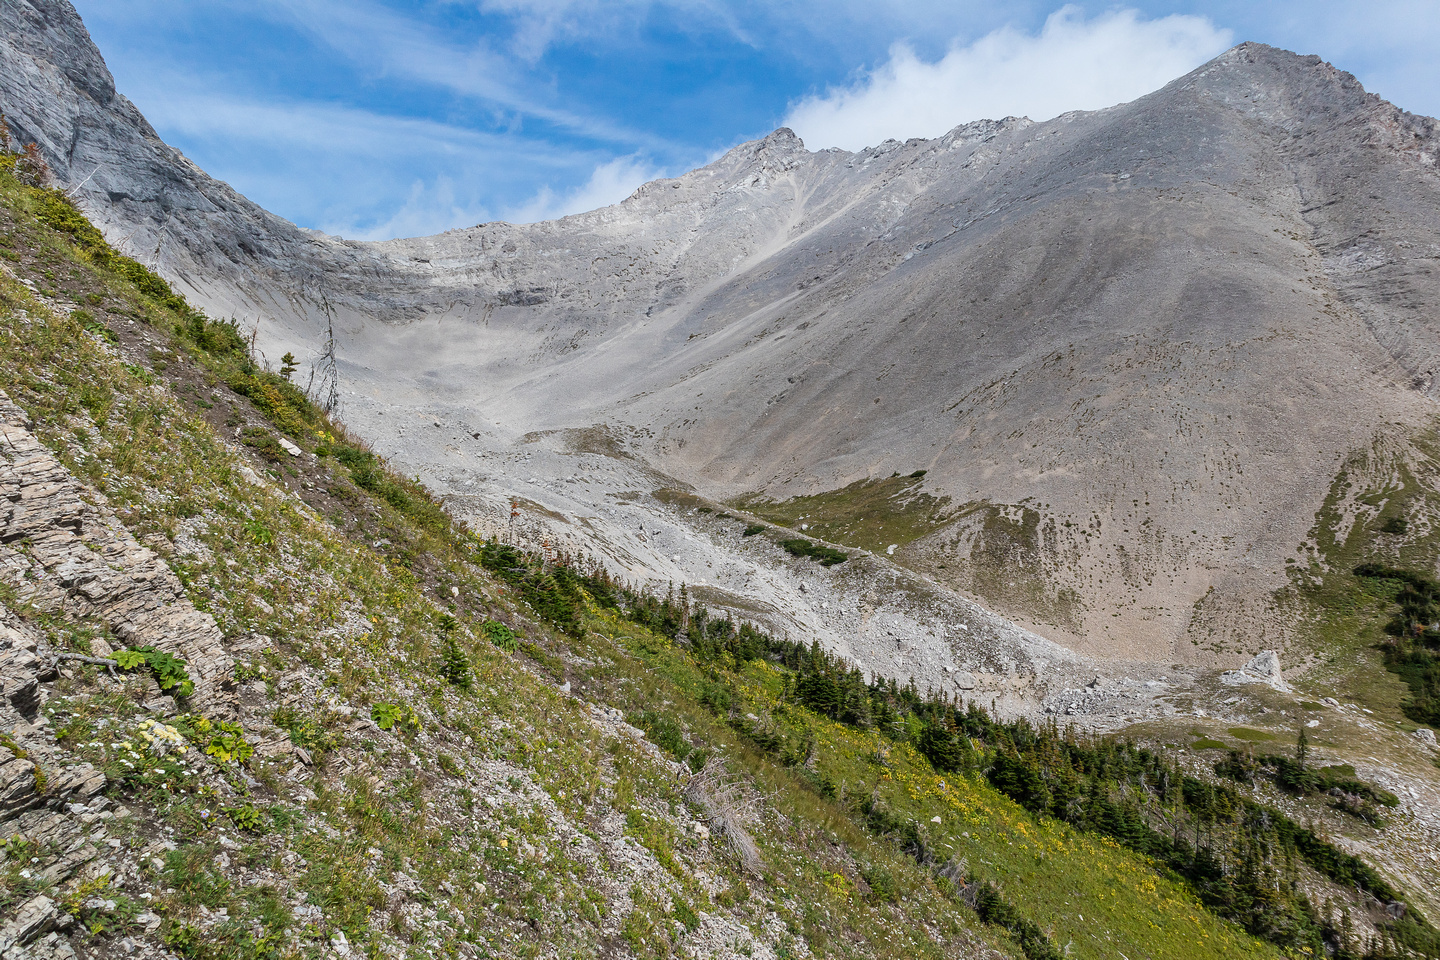 One last look back at the scree bowl and the main massif of Mount McGladrey before I ascend Pengelly